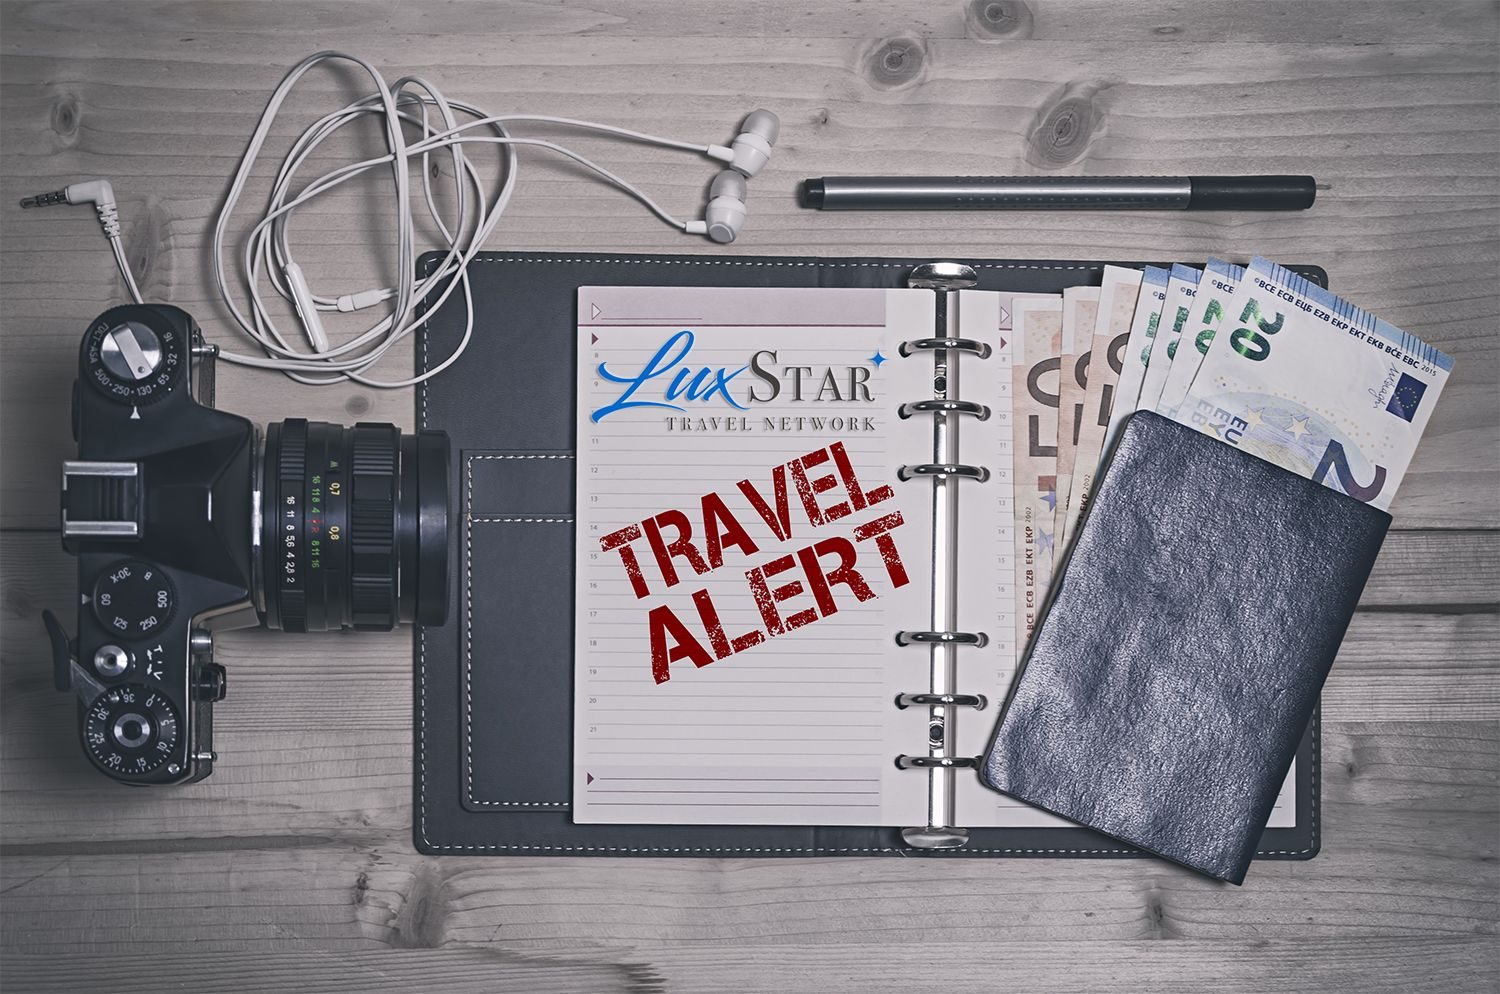 LuxStar Travel Network Reviews Travel Advisories